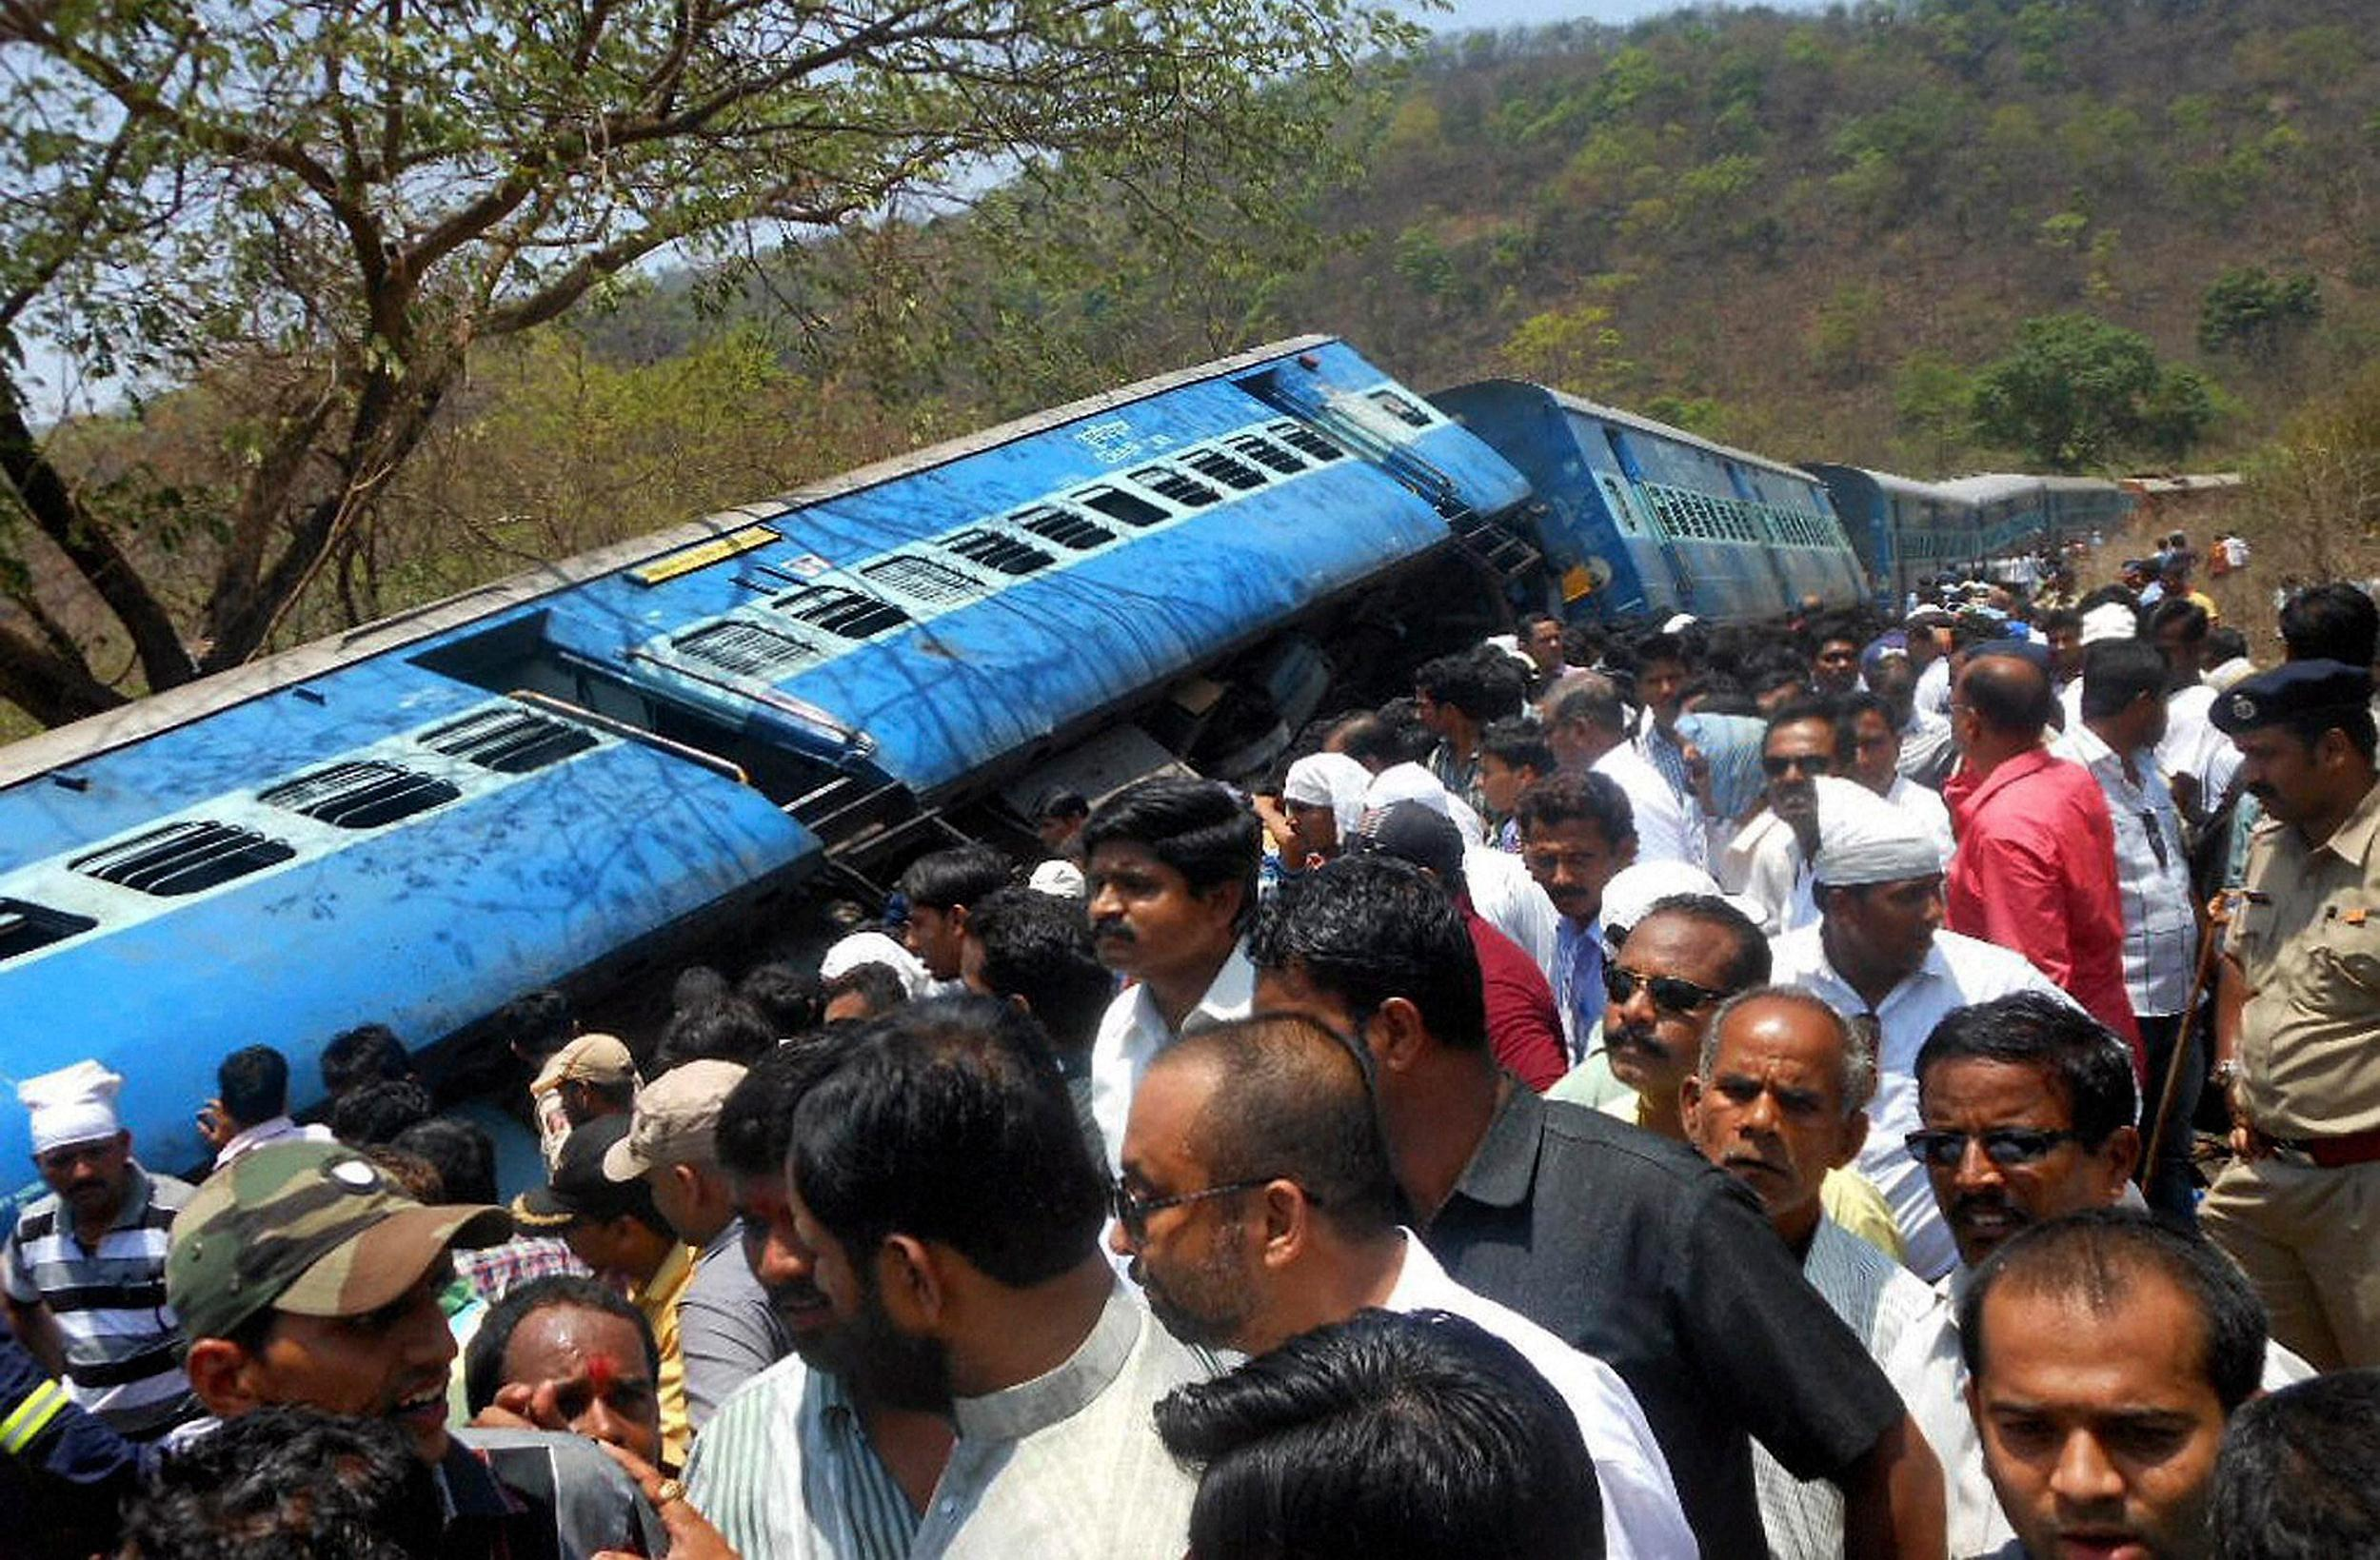 Image: People gather around a passenger train that derailed near Roha station, 70 miles south of Mumbai